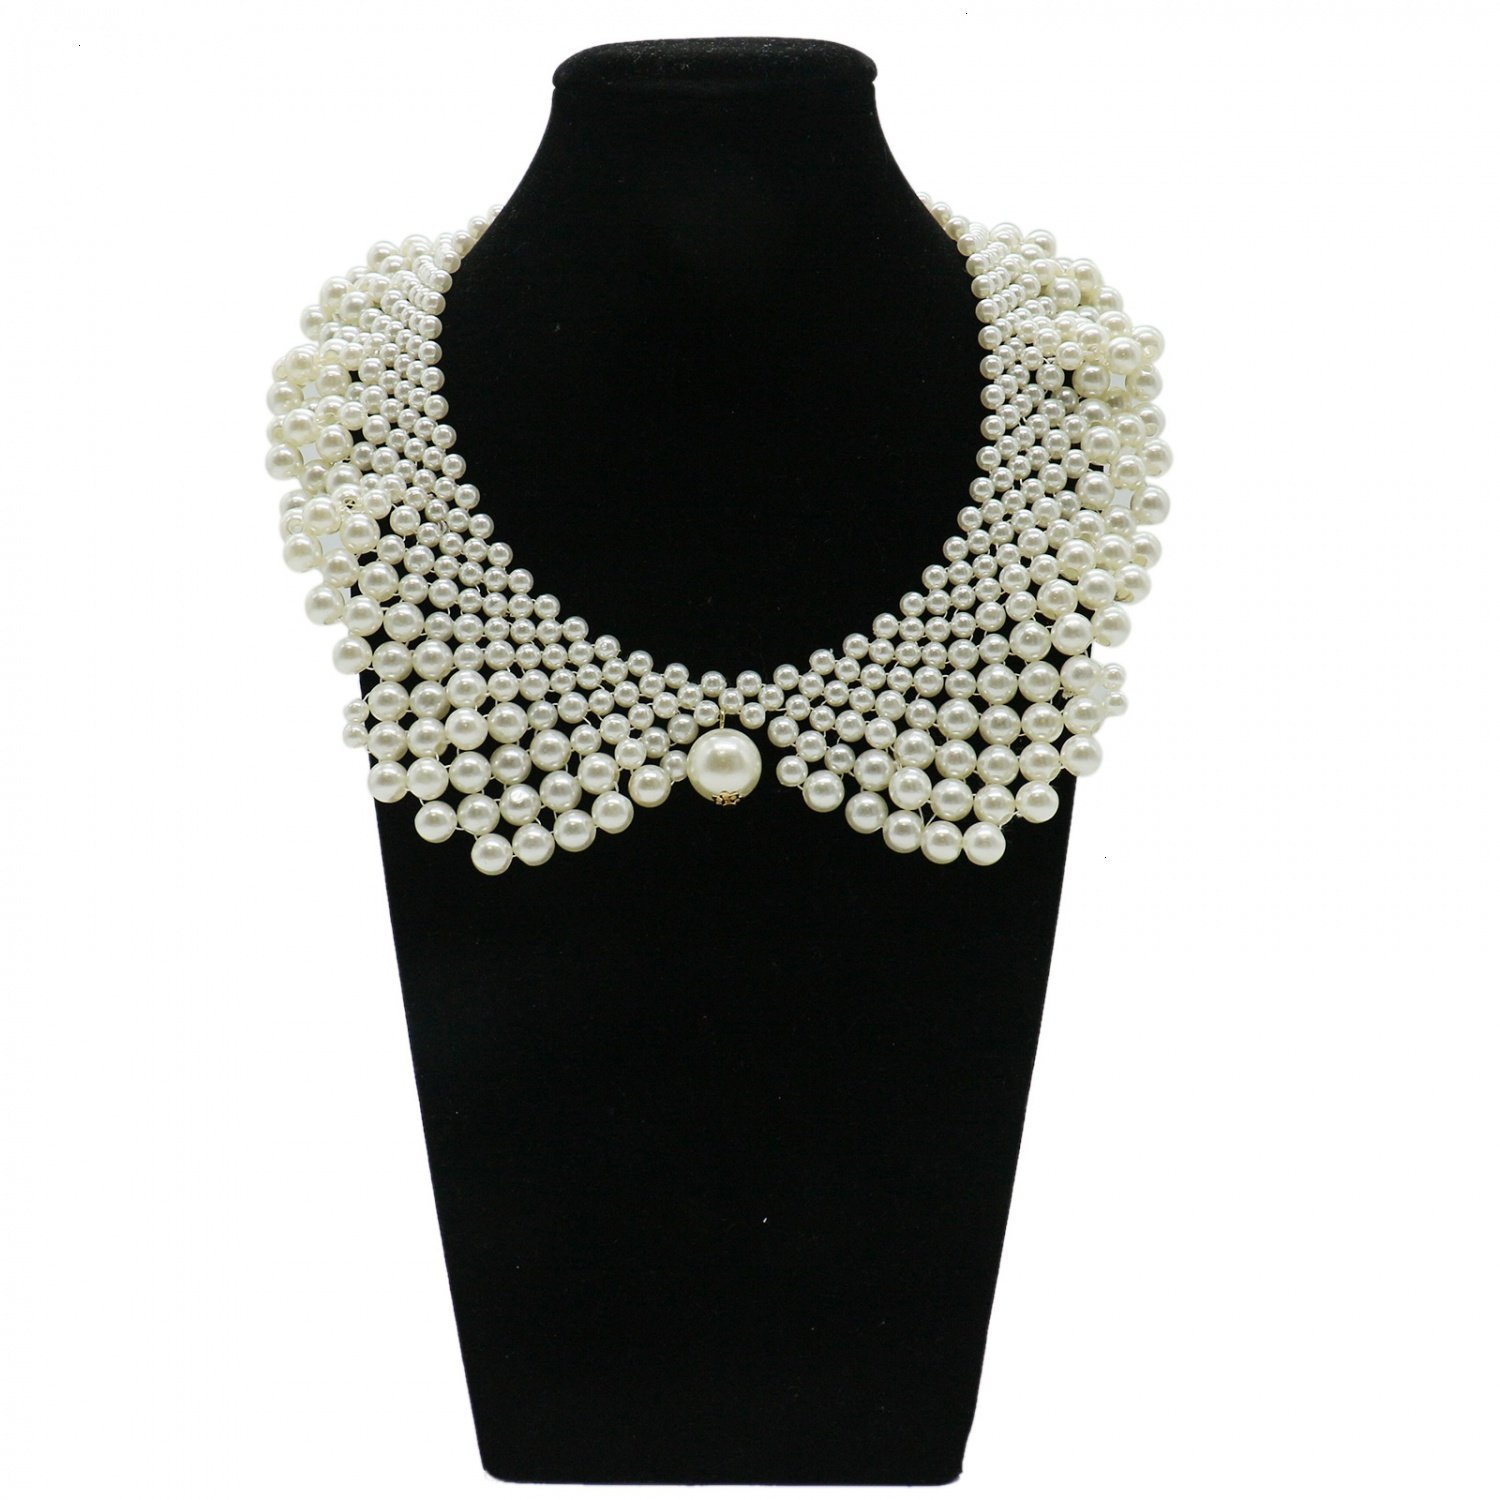 IDS False Collar Necklaces Romantic Necklaces with Artificial Pearl for Women Clothing DIY Craft Supply IDS Manufacturer